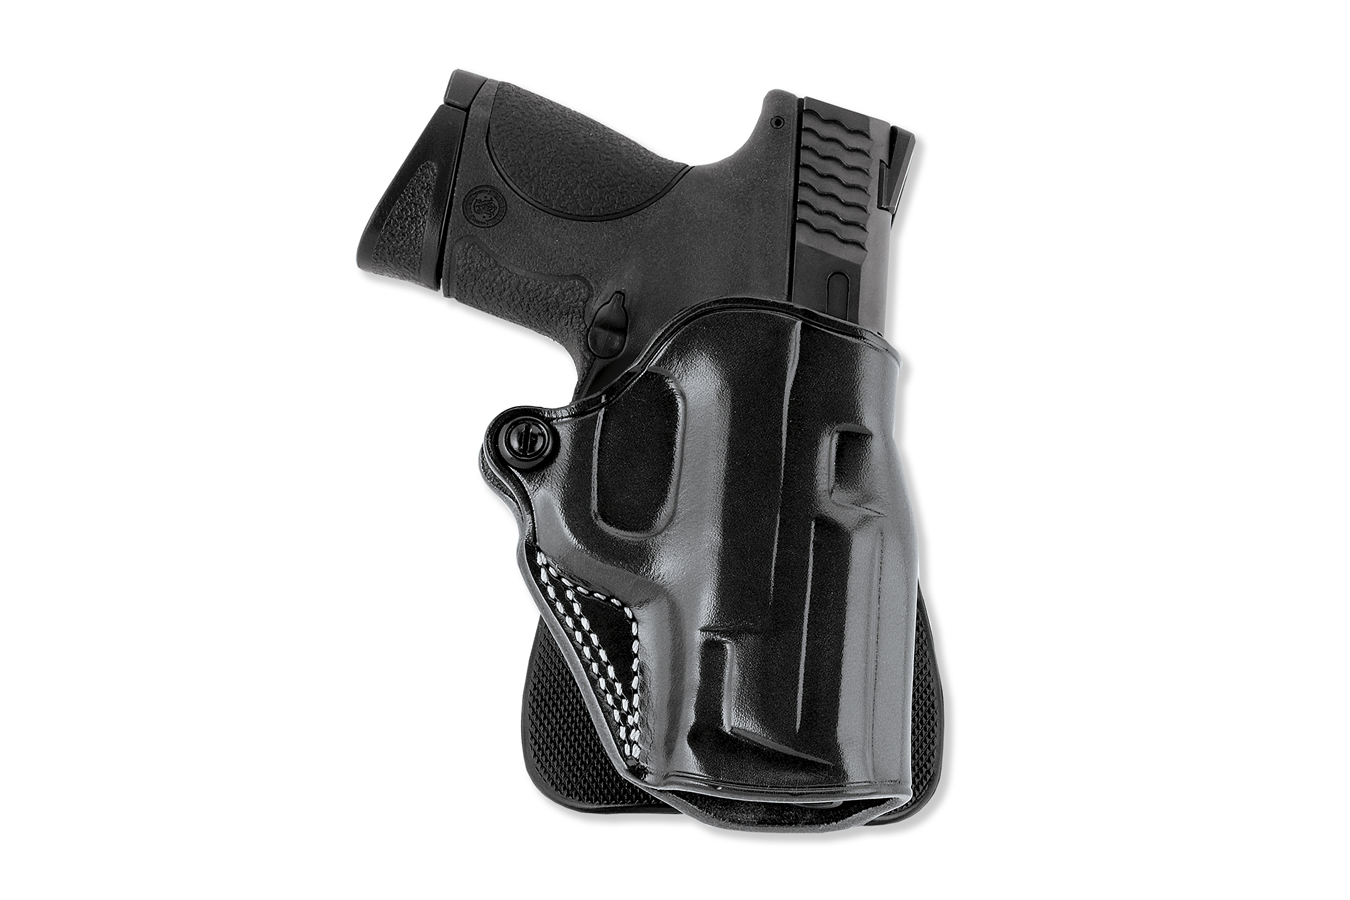 GALCO INTERNATIONAL FNS 9/40, FNX 9/40 SPEED PADDLE HOLSTER